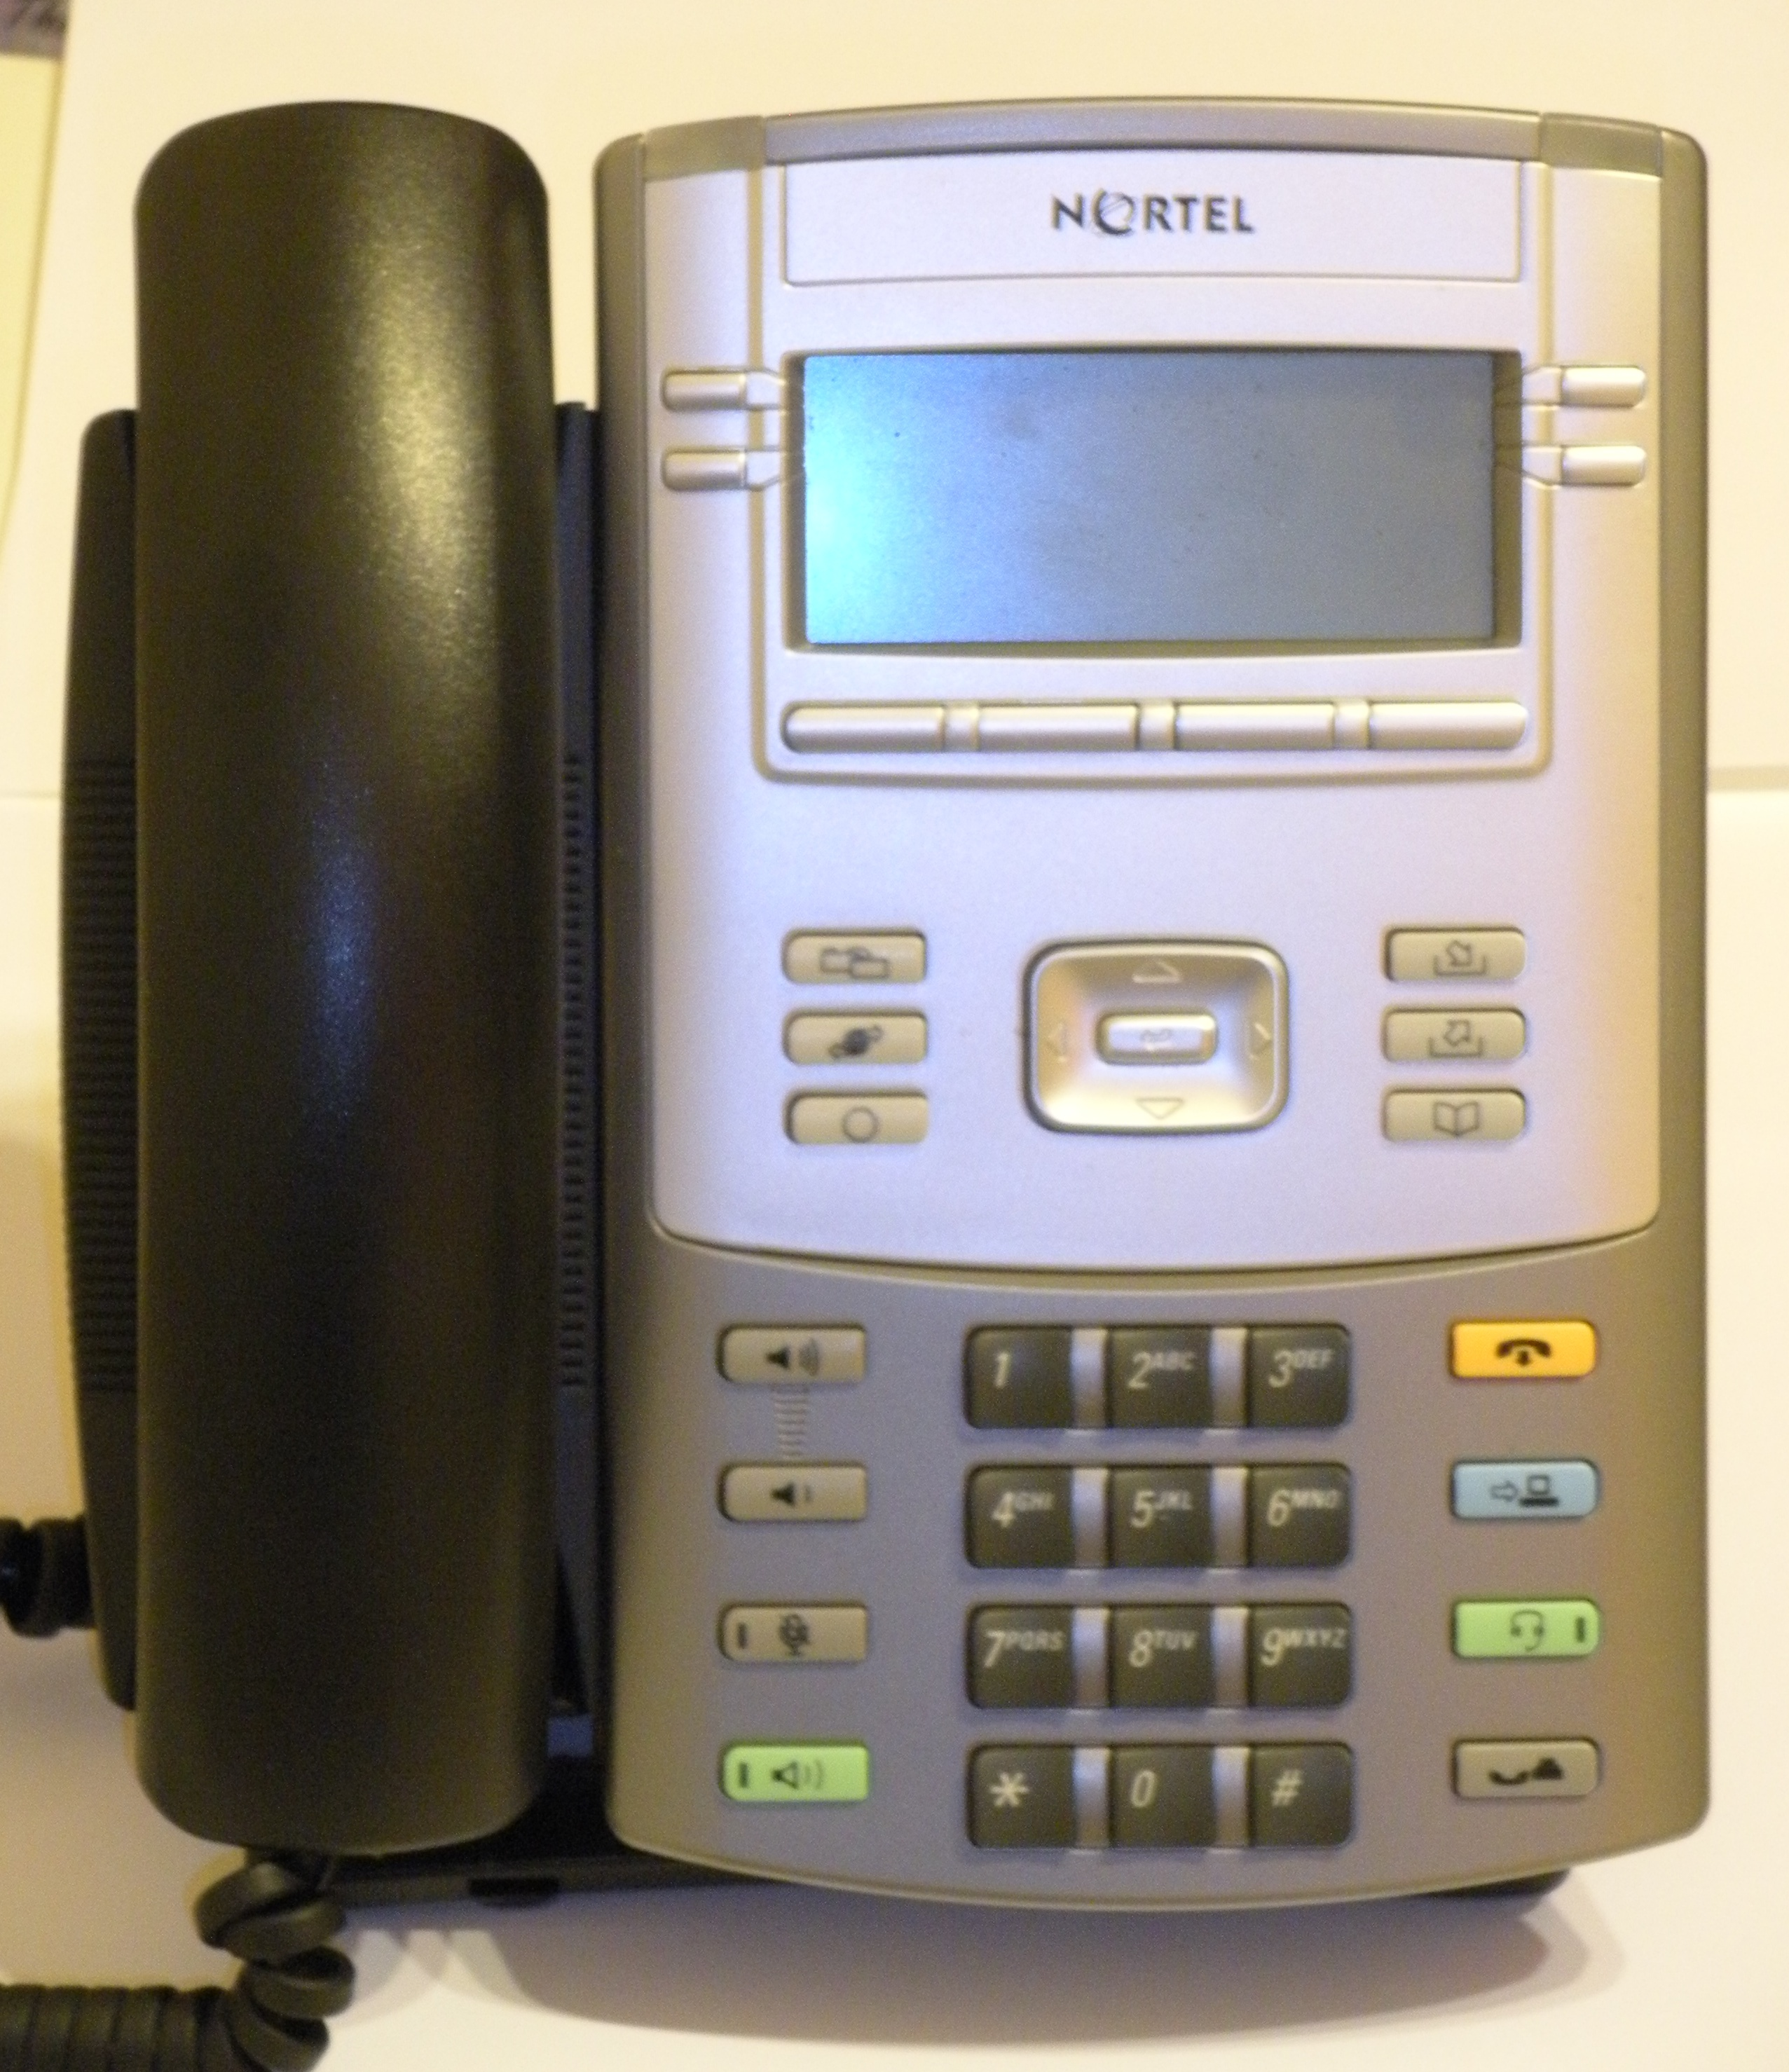 telephone jersey basestation edge comdial new systems base station dect vertical avaya south business office ip phone